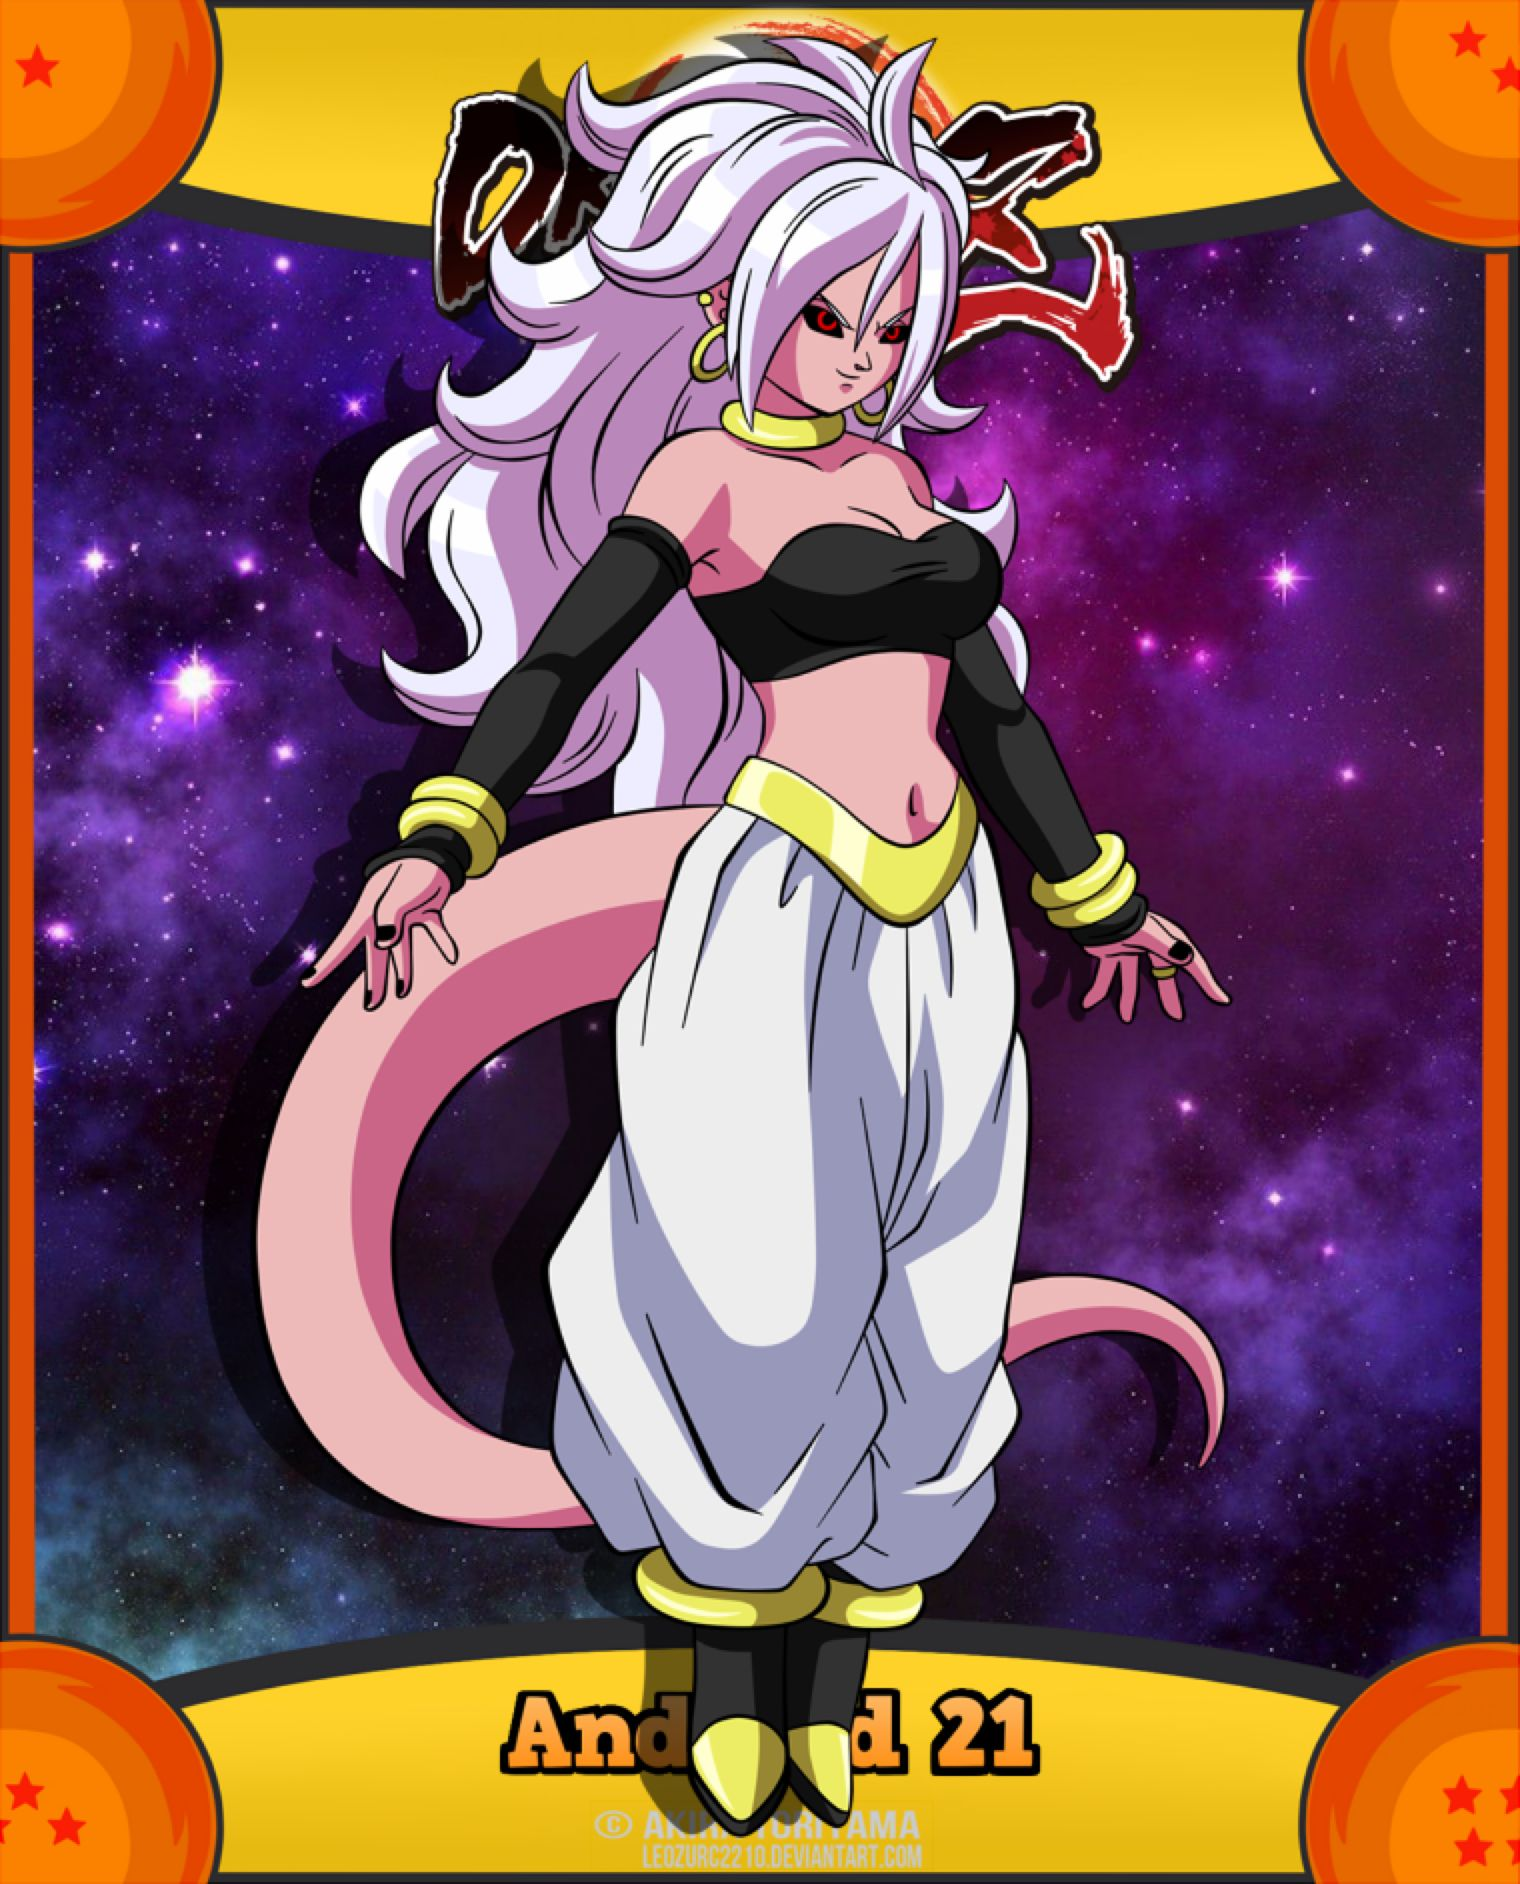 Android 21 by LeoZURC2210 on DeviantArt in 2020 Anime